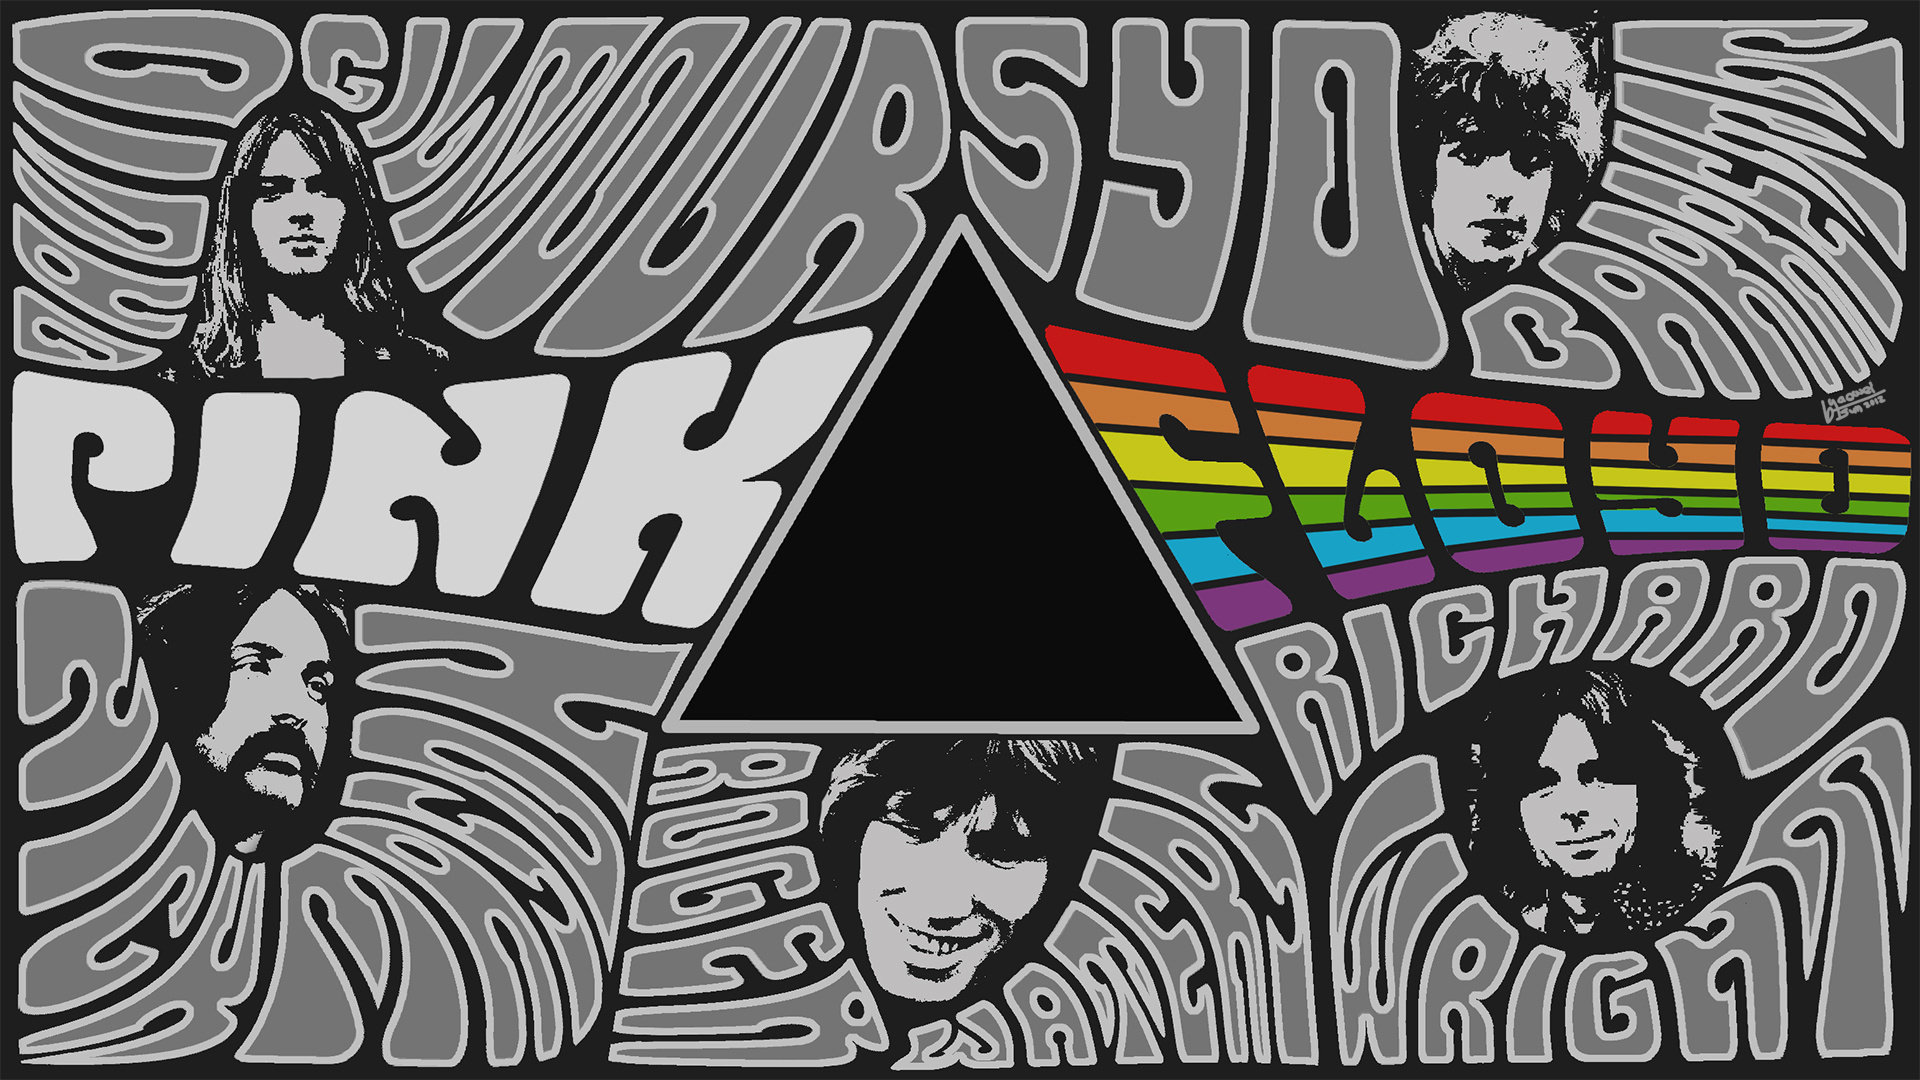 Awesome Pink Floyd Free Wallpaper Id 73592 For Full Hd 1080p Computer